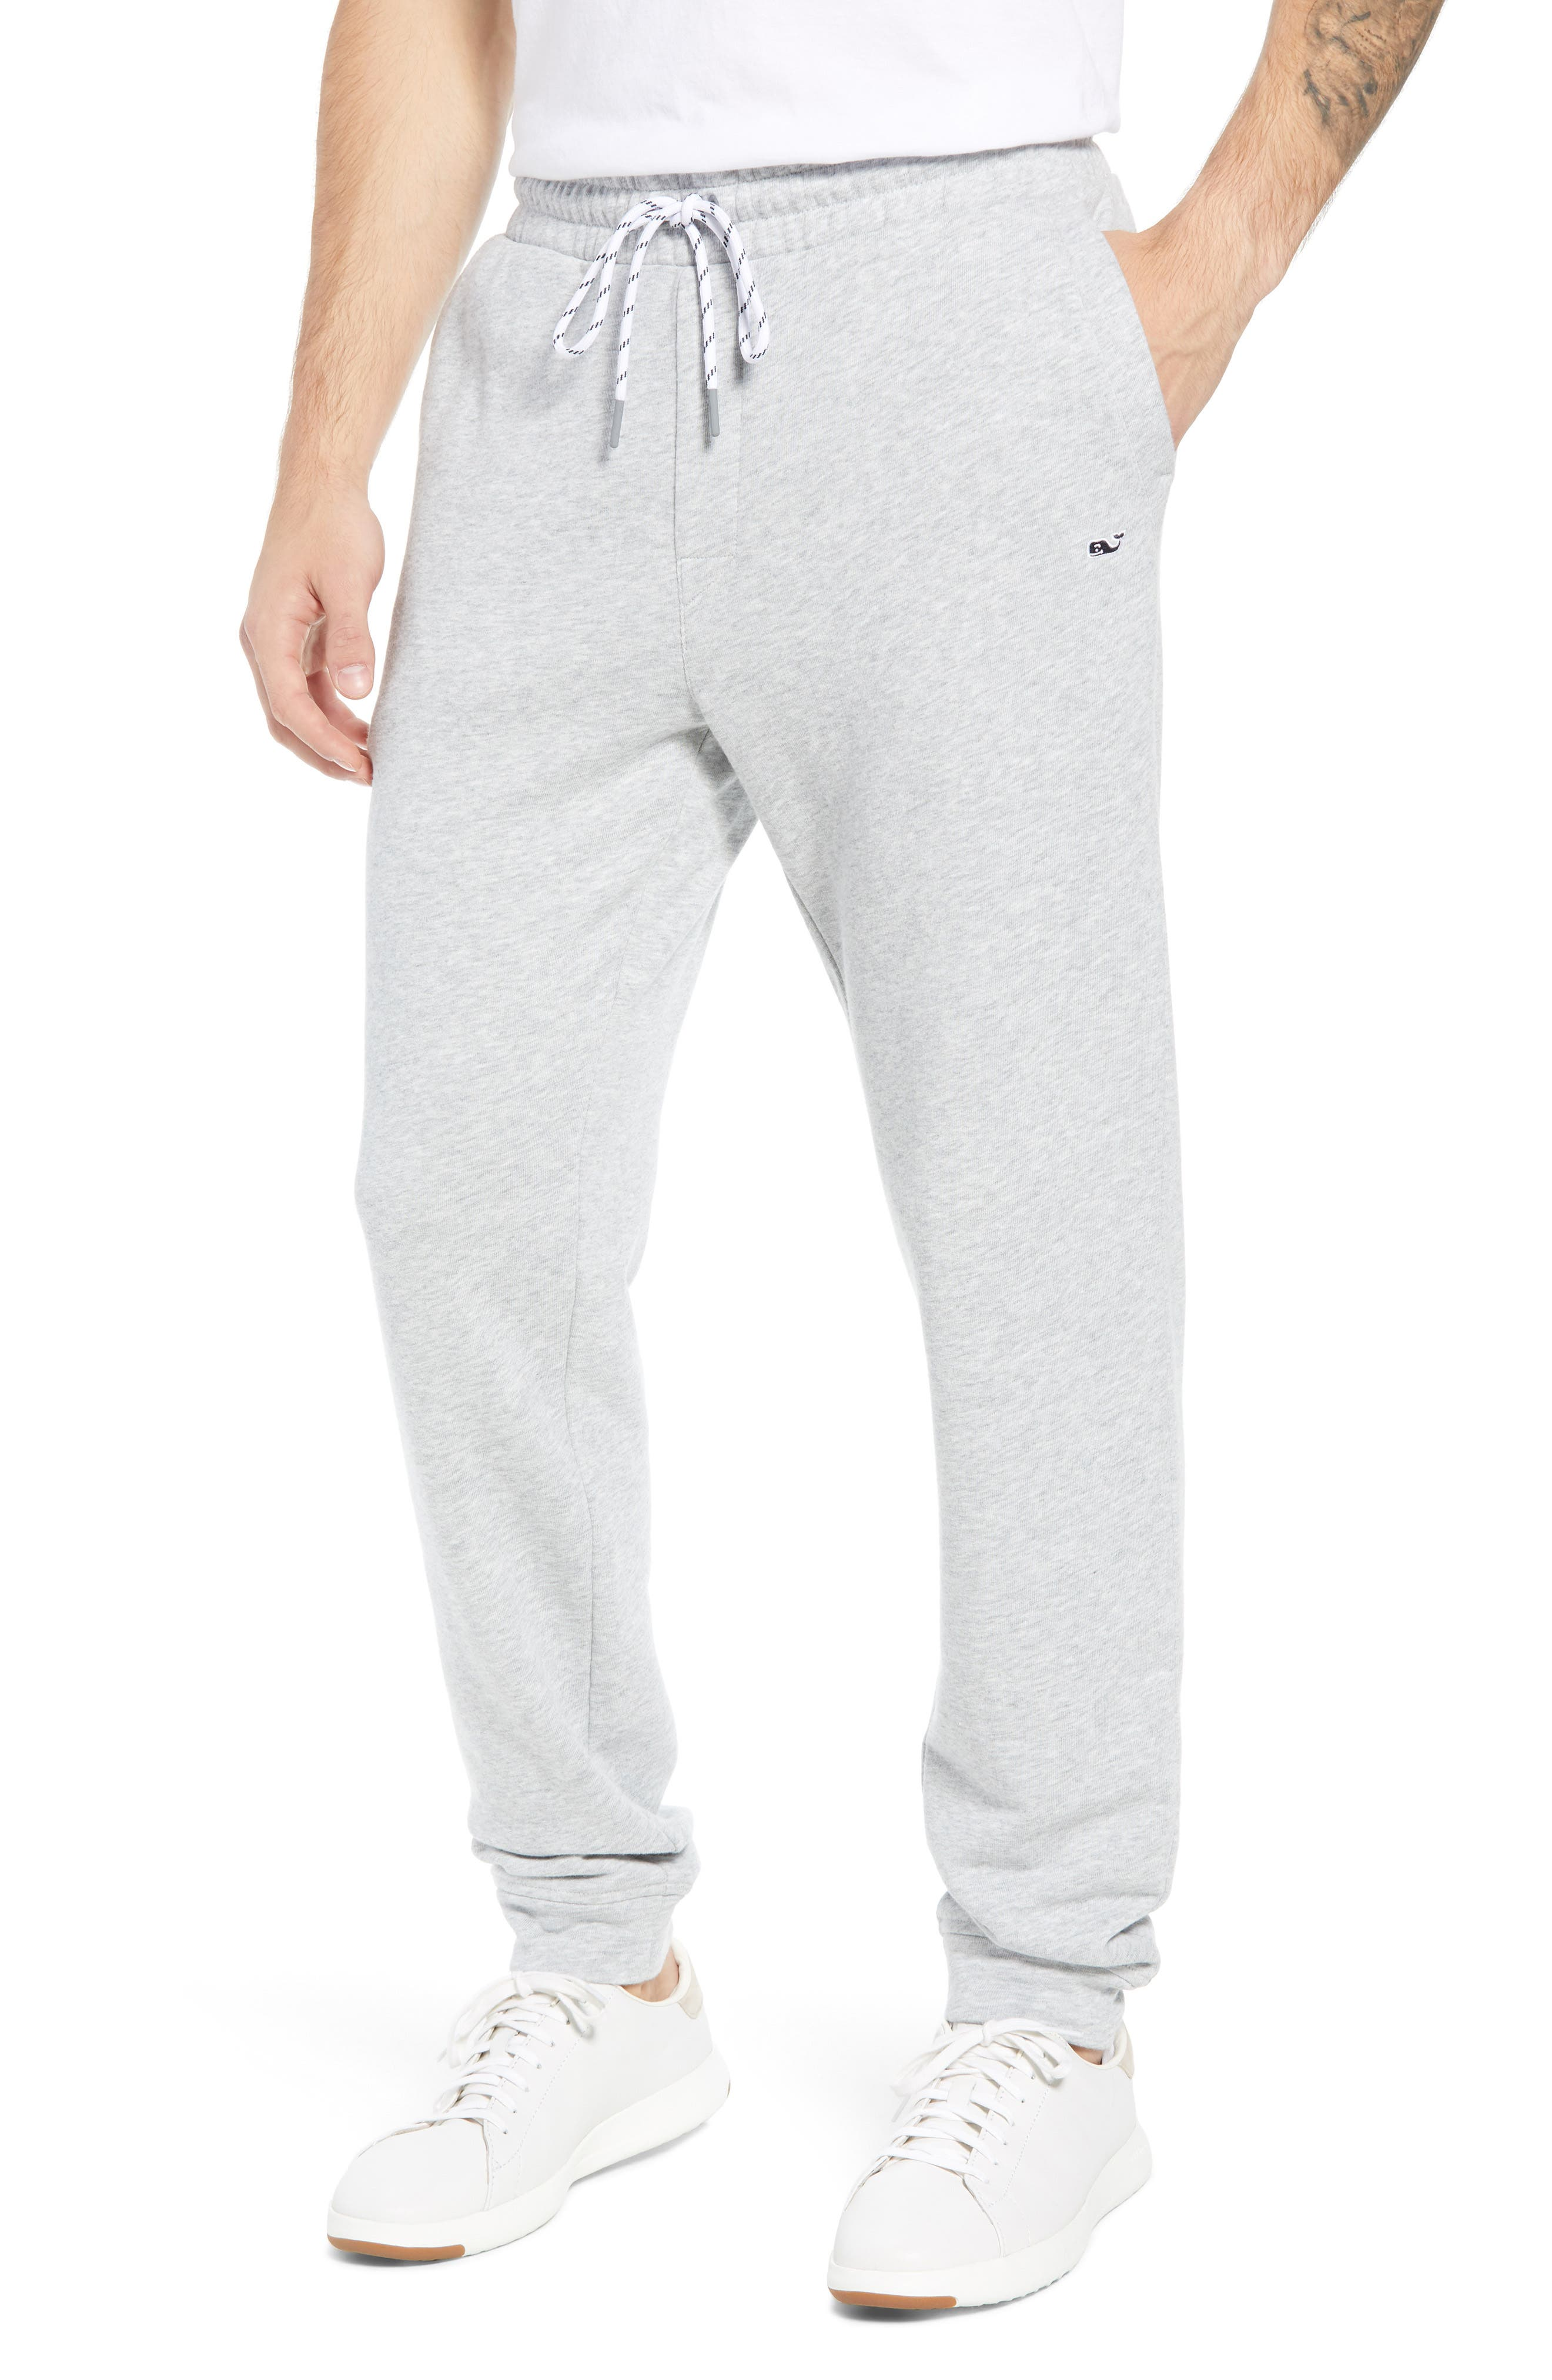 Heritage French Terry Knit Jogger Pants,                             Main thumbnail 1, color,                             GRAY HEATHER